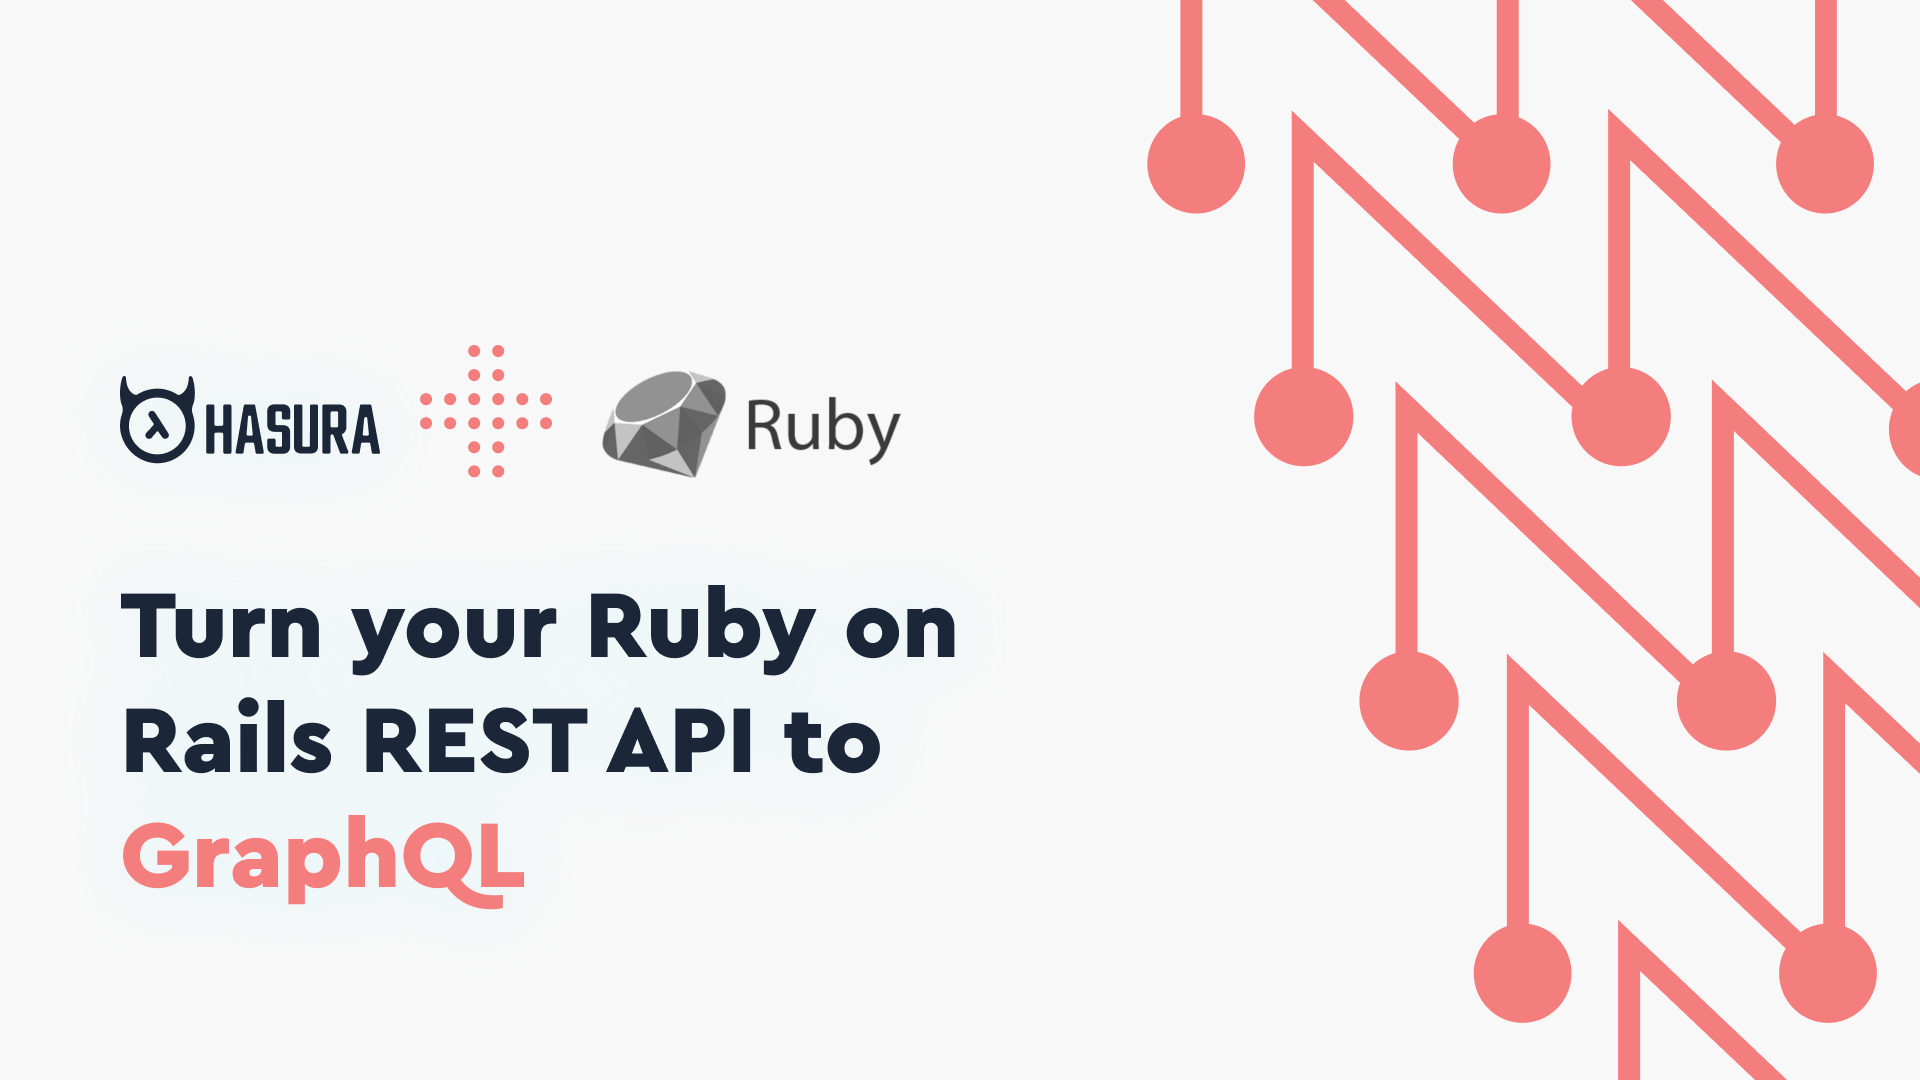 Turn your Ruby on Rails REST API to GraphQL using Hasura Actions